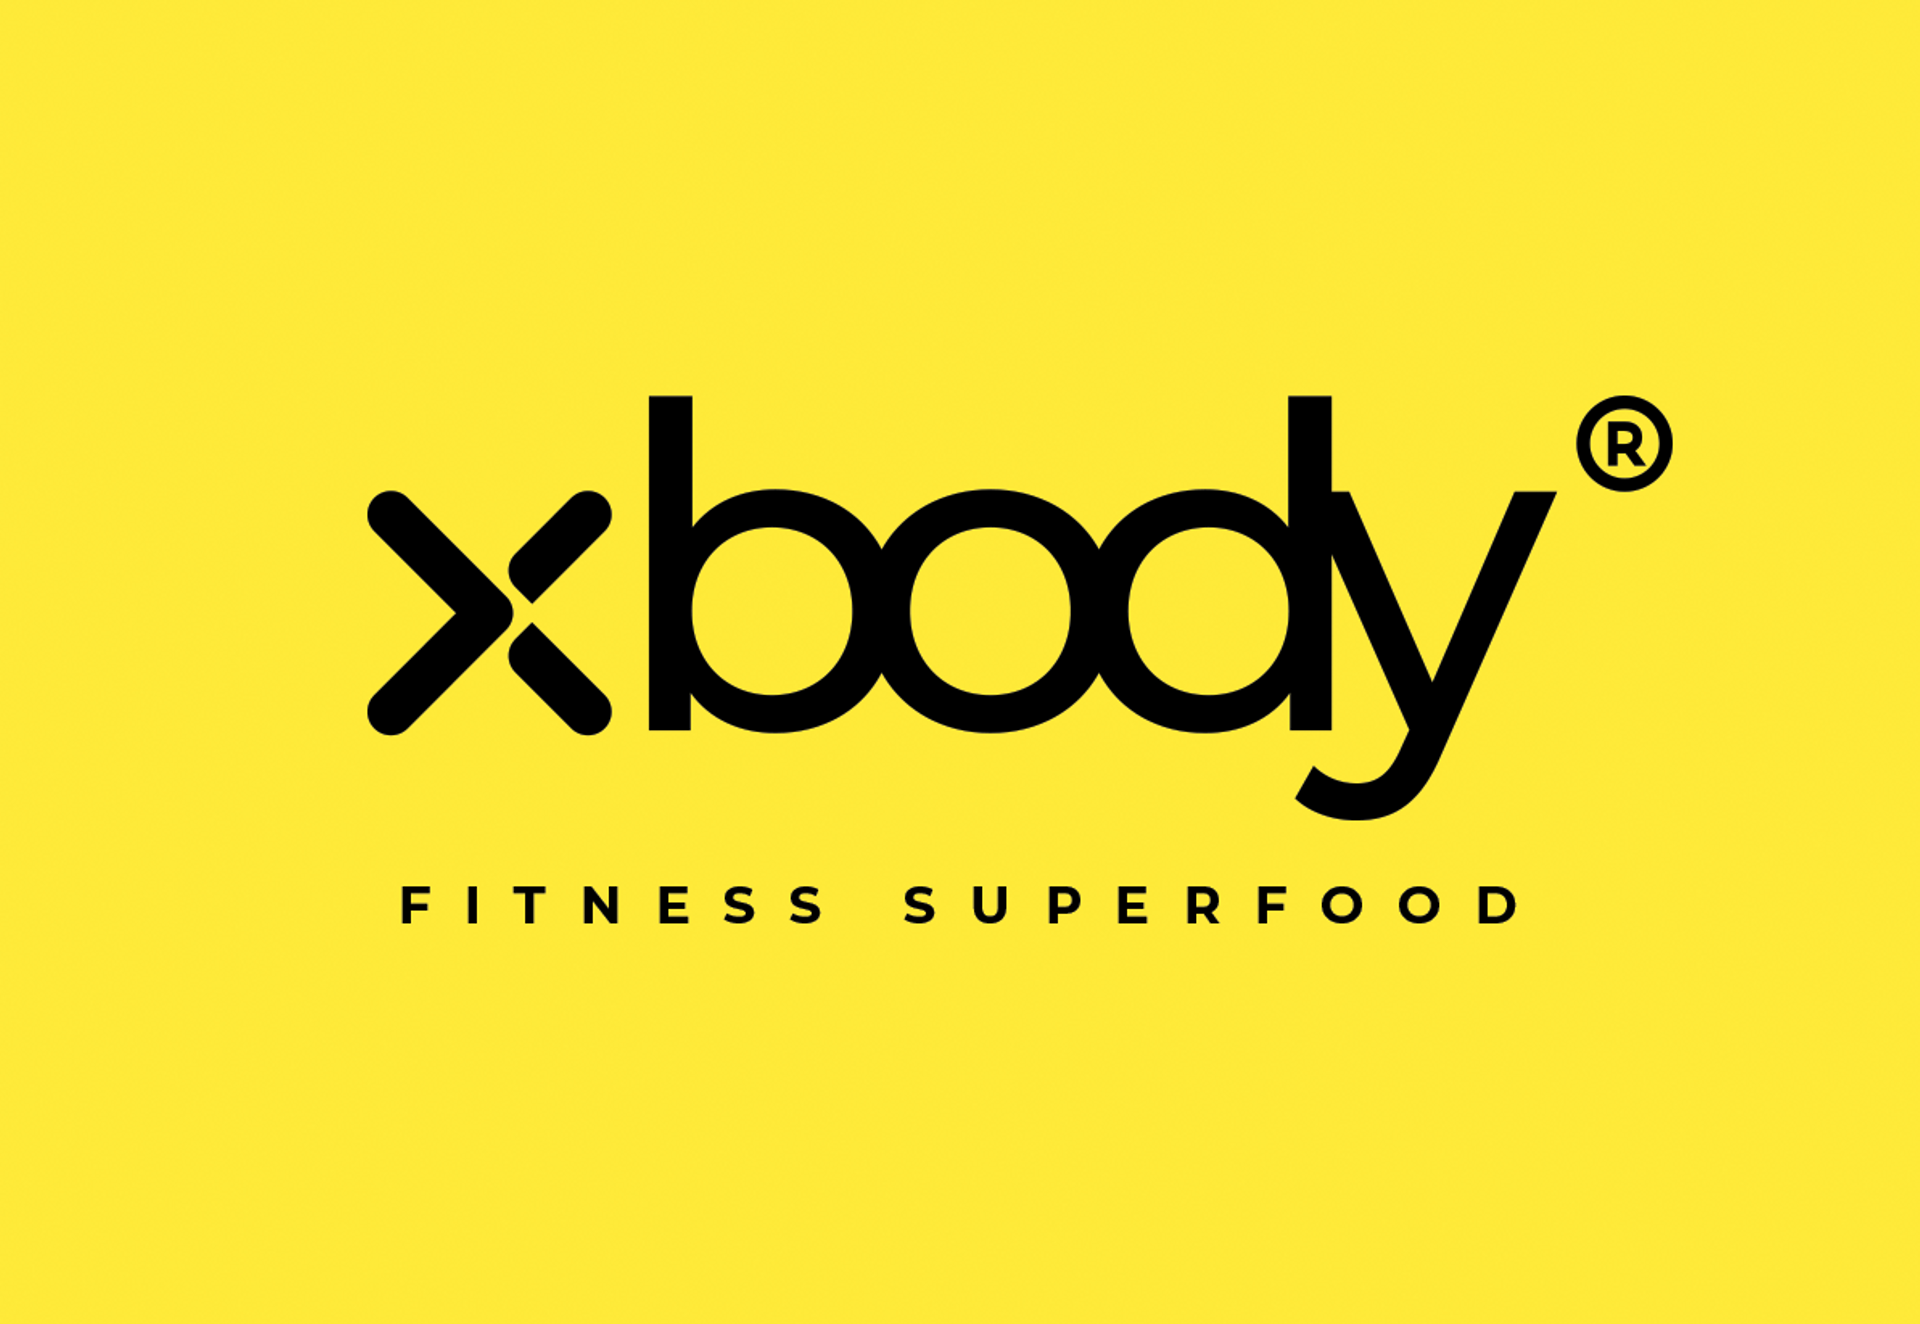 XBODY Fitness Superfood Cafe